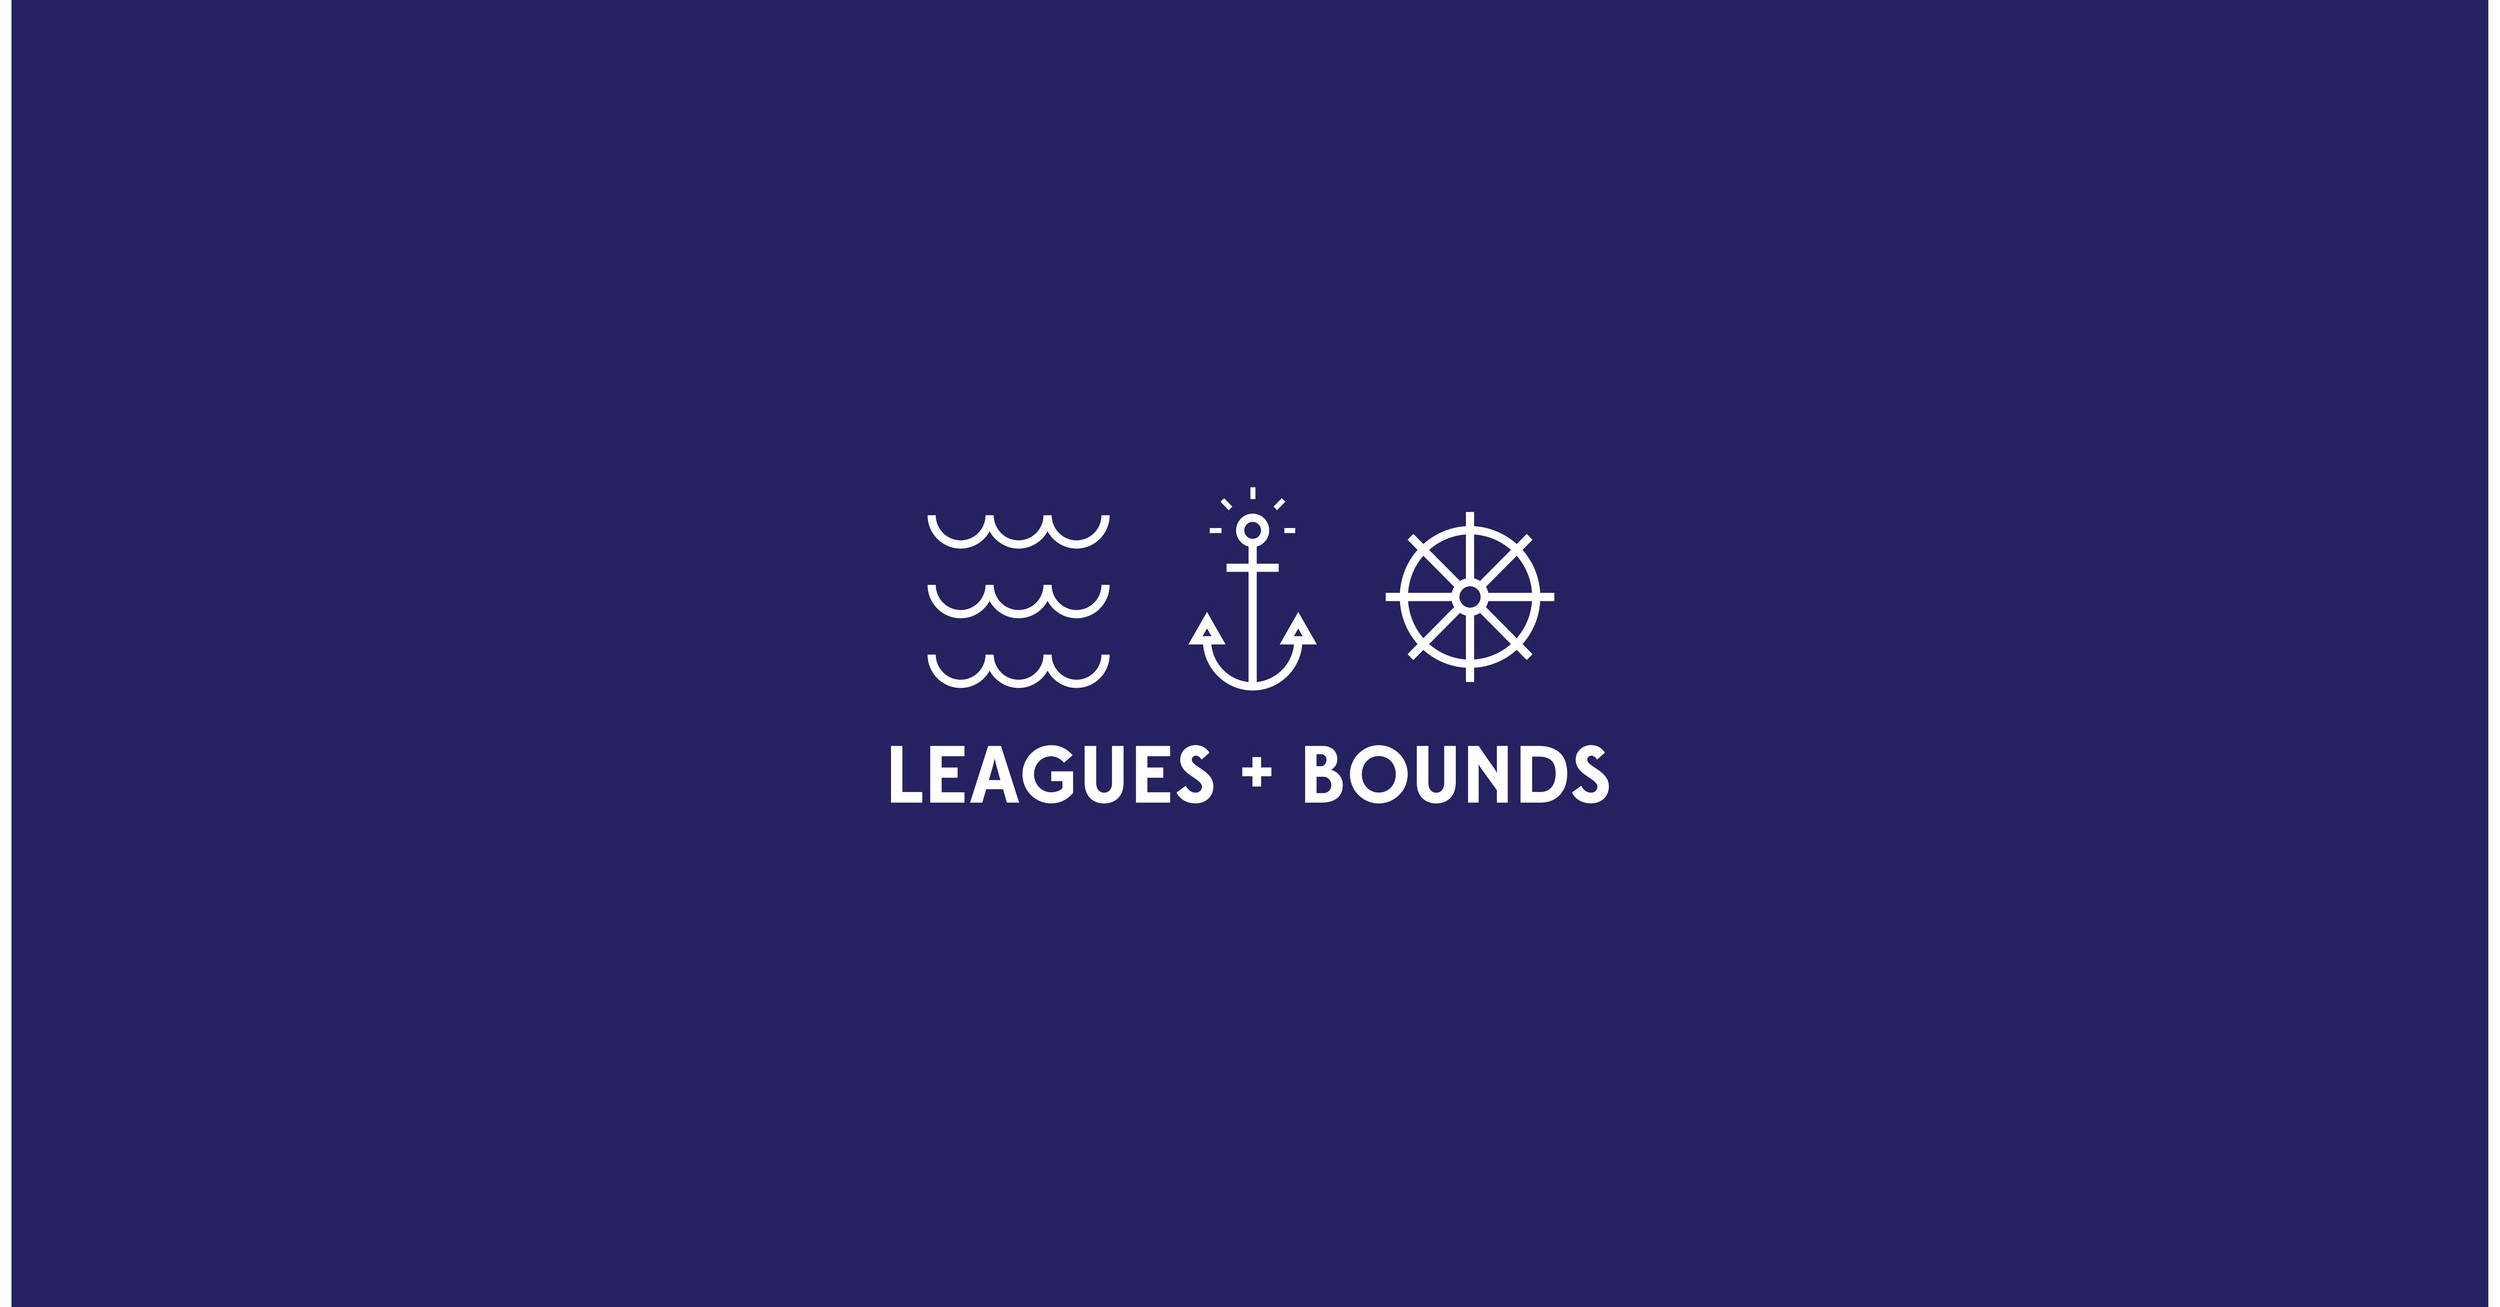 outeredit - leagues & bounds 1